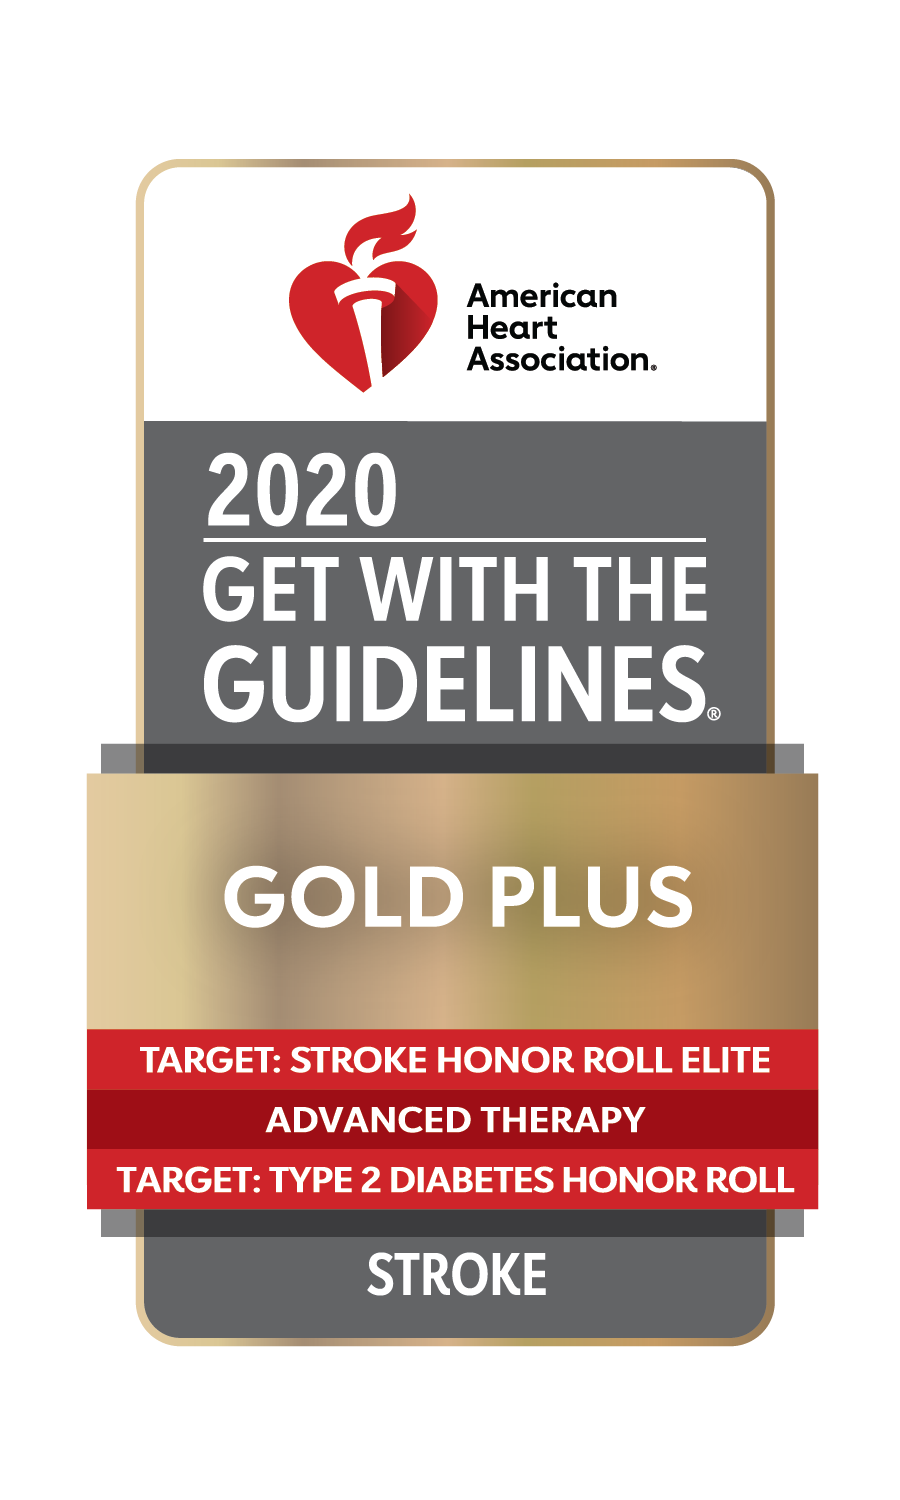 2020 Get With the Guidelines Target: Stroke Honor Roll Elite Plus Gold Plus logo